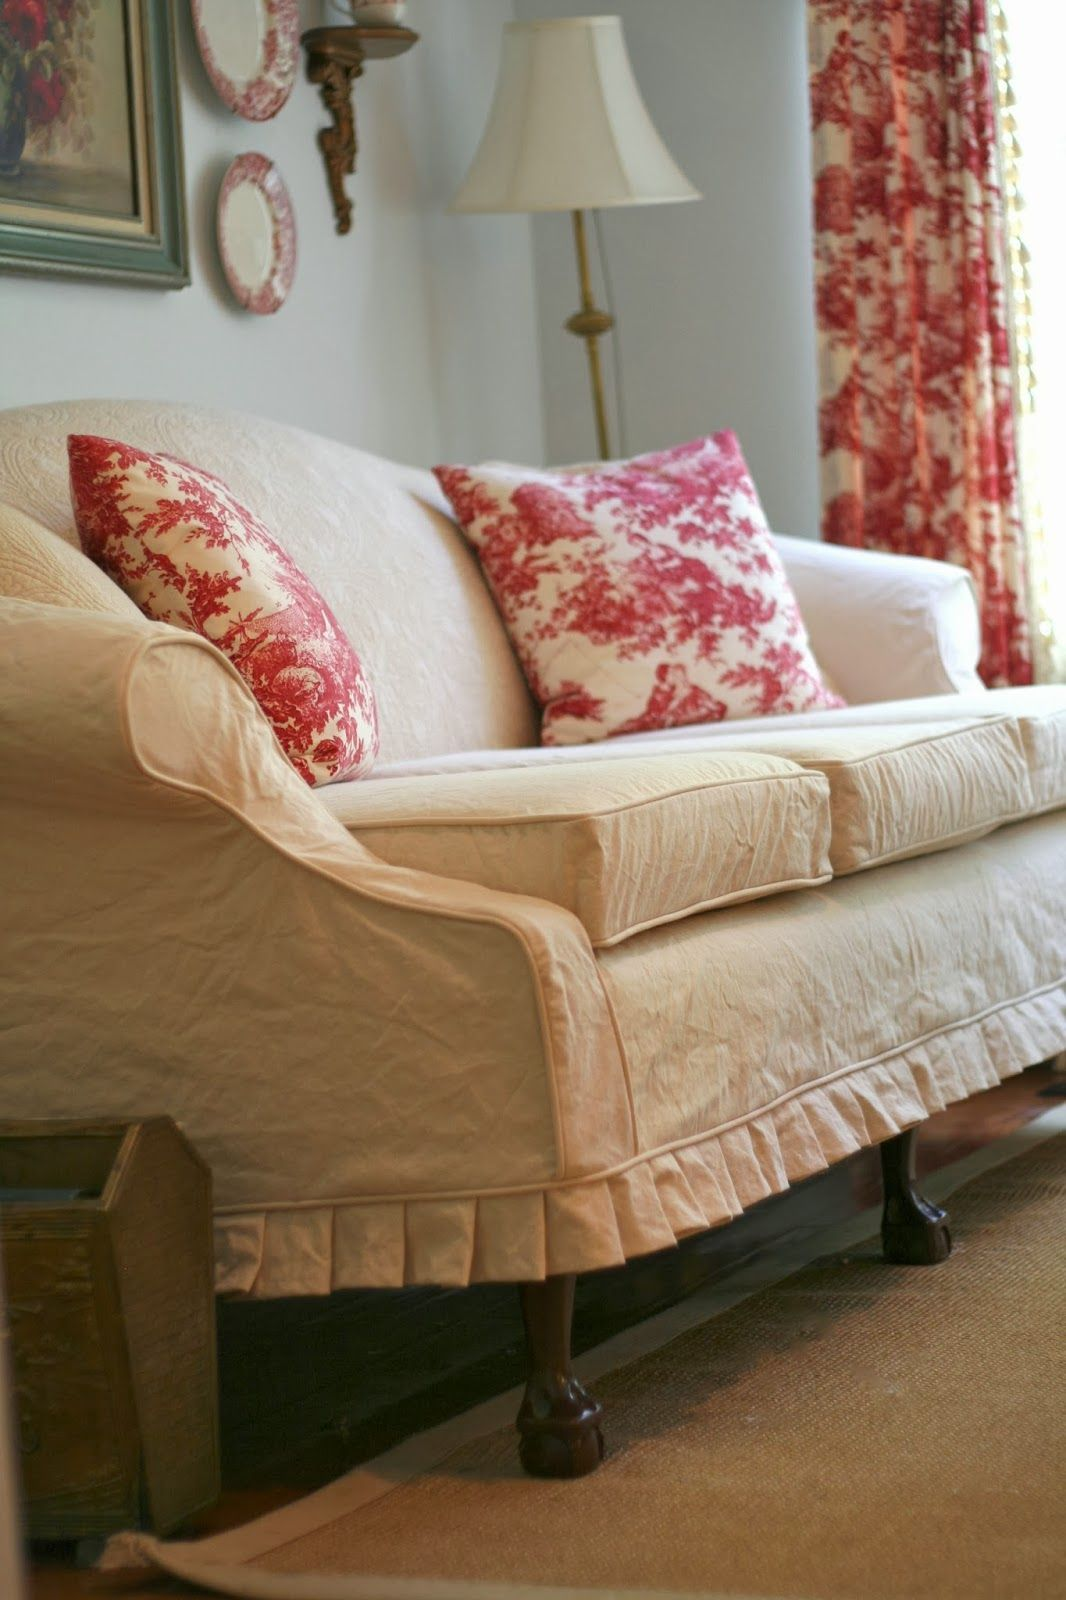 quilted embroidery sectional sofa couch slipcovers furniture protector cotton set design images pleated slipcovered the slipcover was made from a